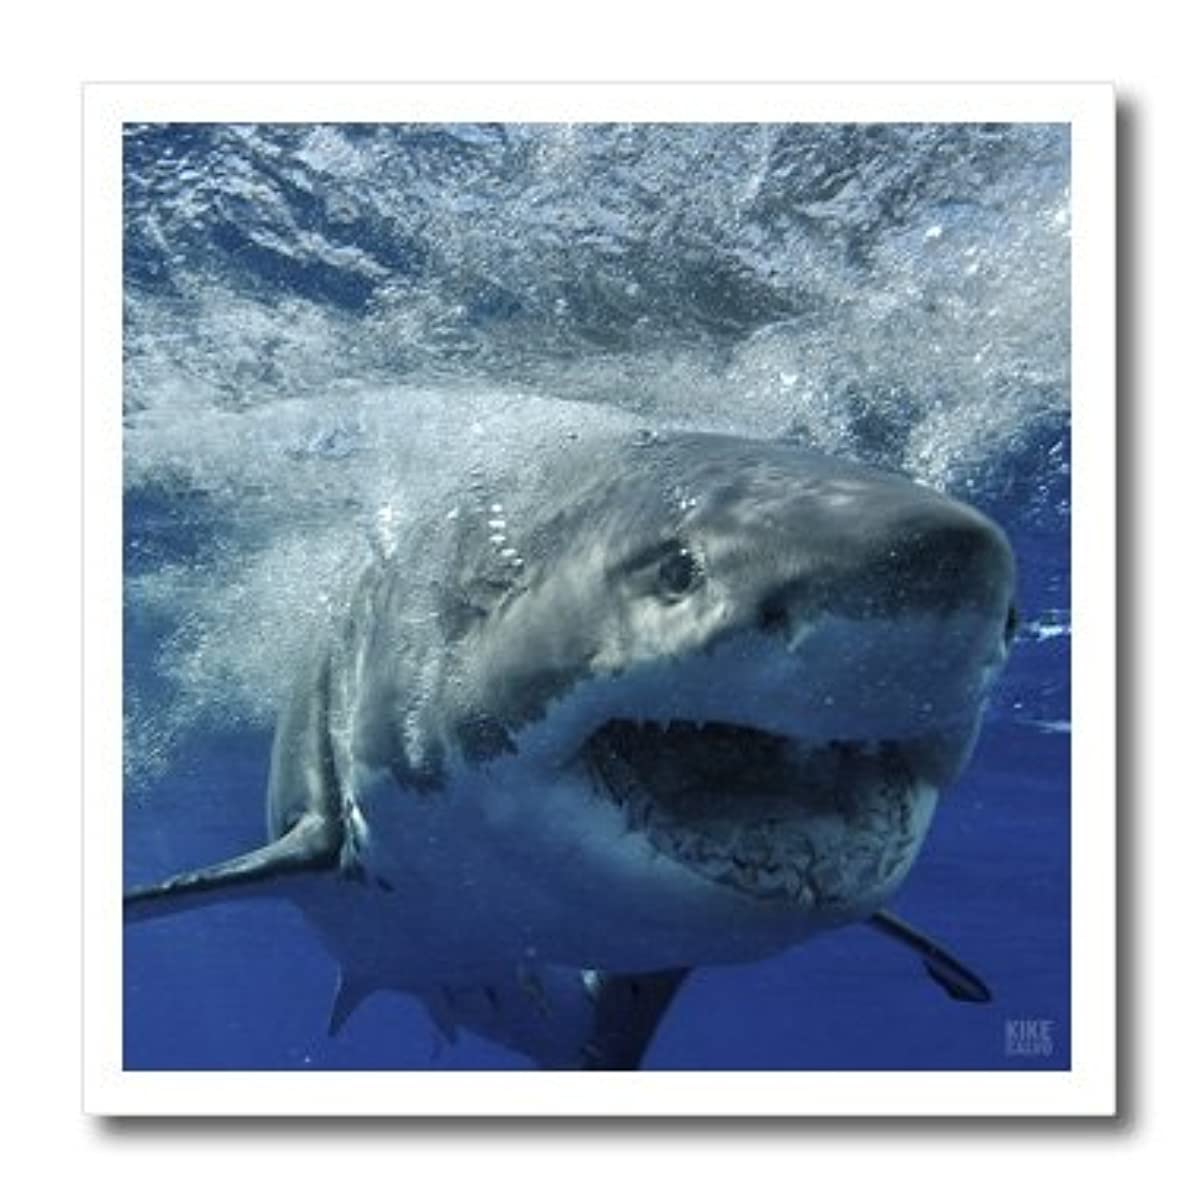 3dRose ht_10587_1 Great White Shark-Iron on Heat Transfer for White Material, 8 by 8-Inch